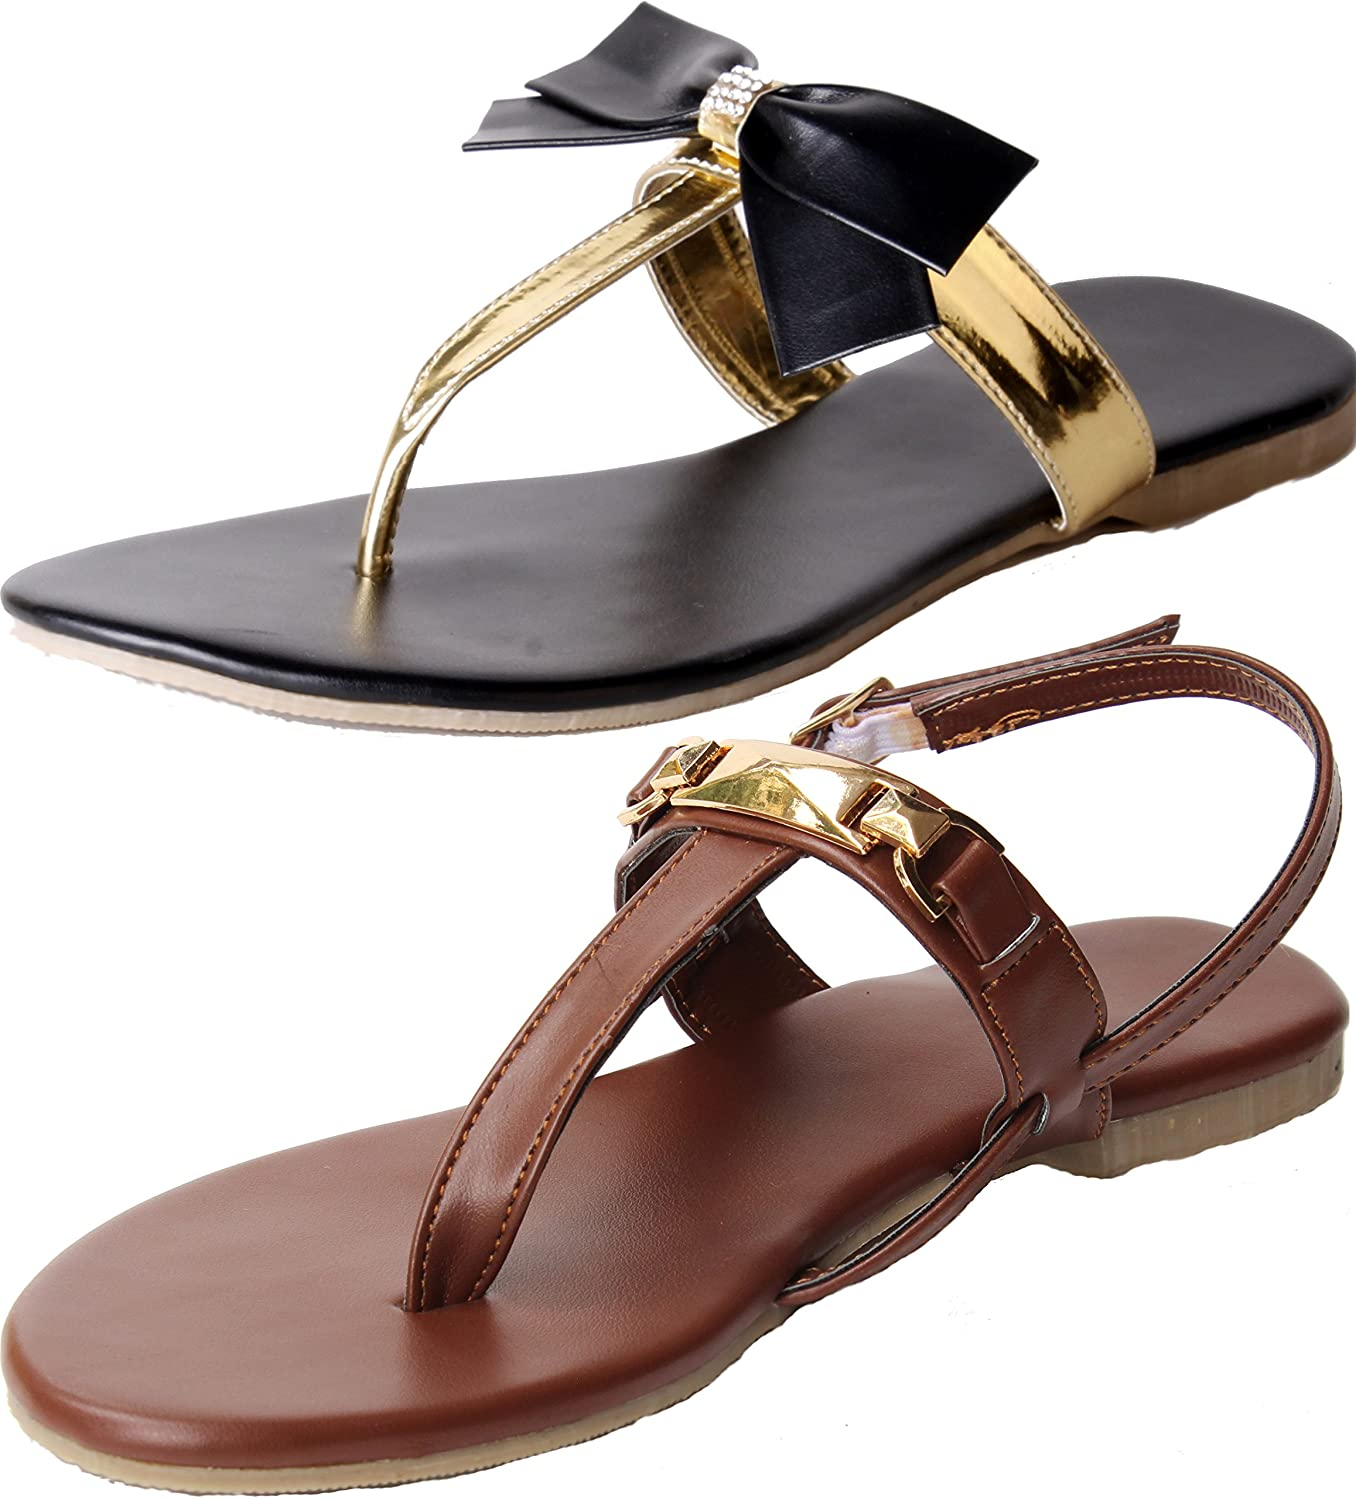 Buy Combo Pack of Two Sandals  Ladies